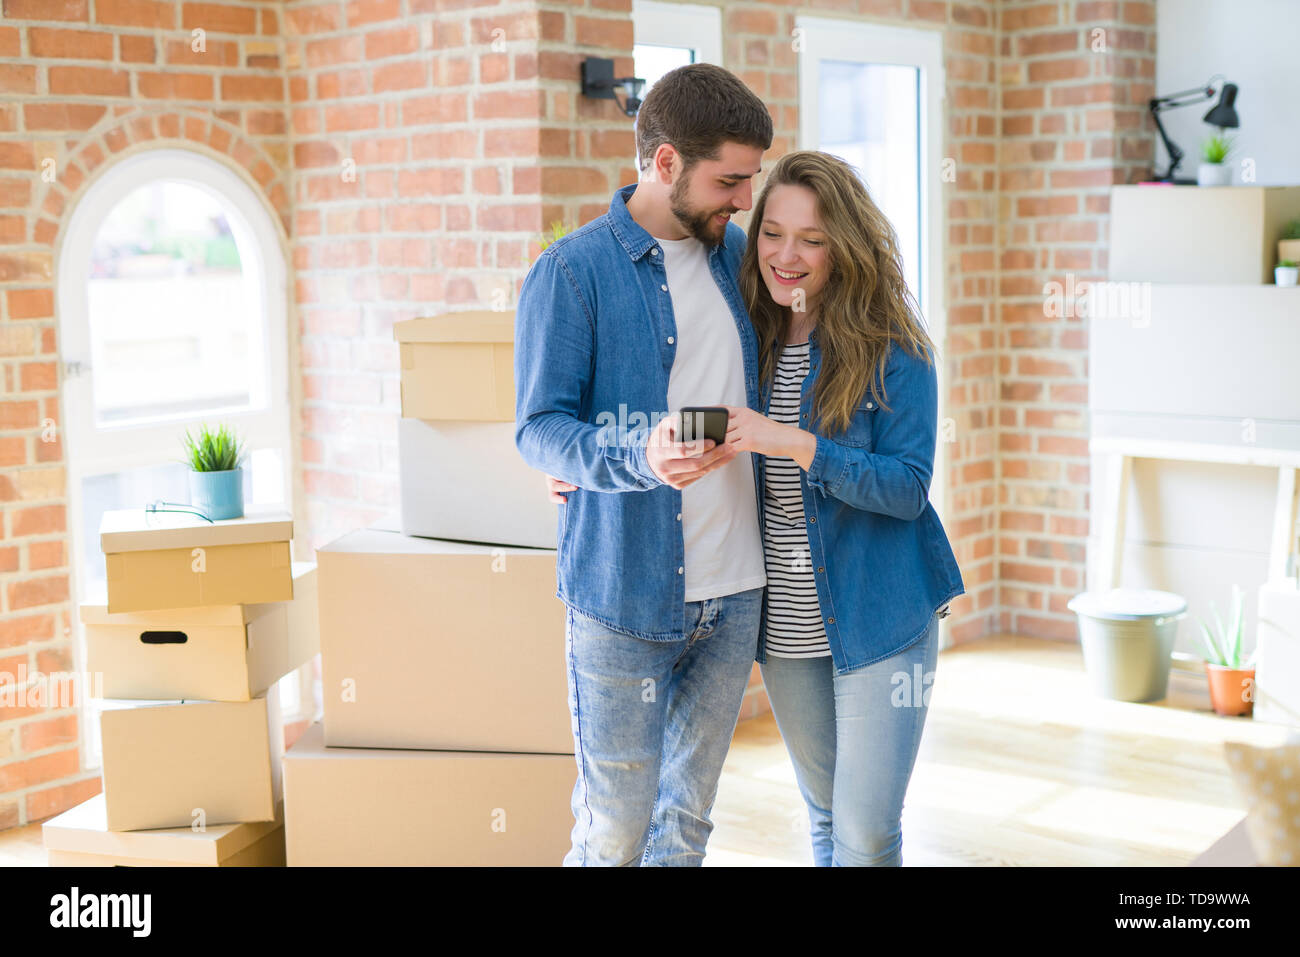 Young couple moving to a new house using smartphone around cardboard boxes - Stock Image